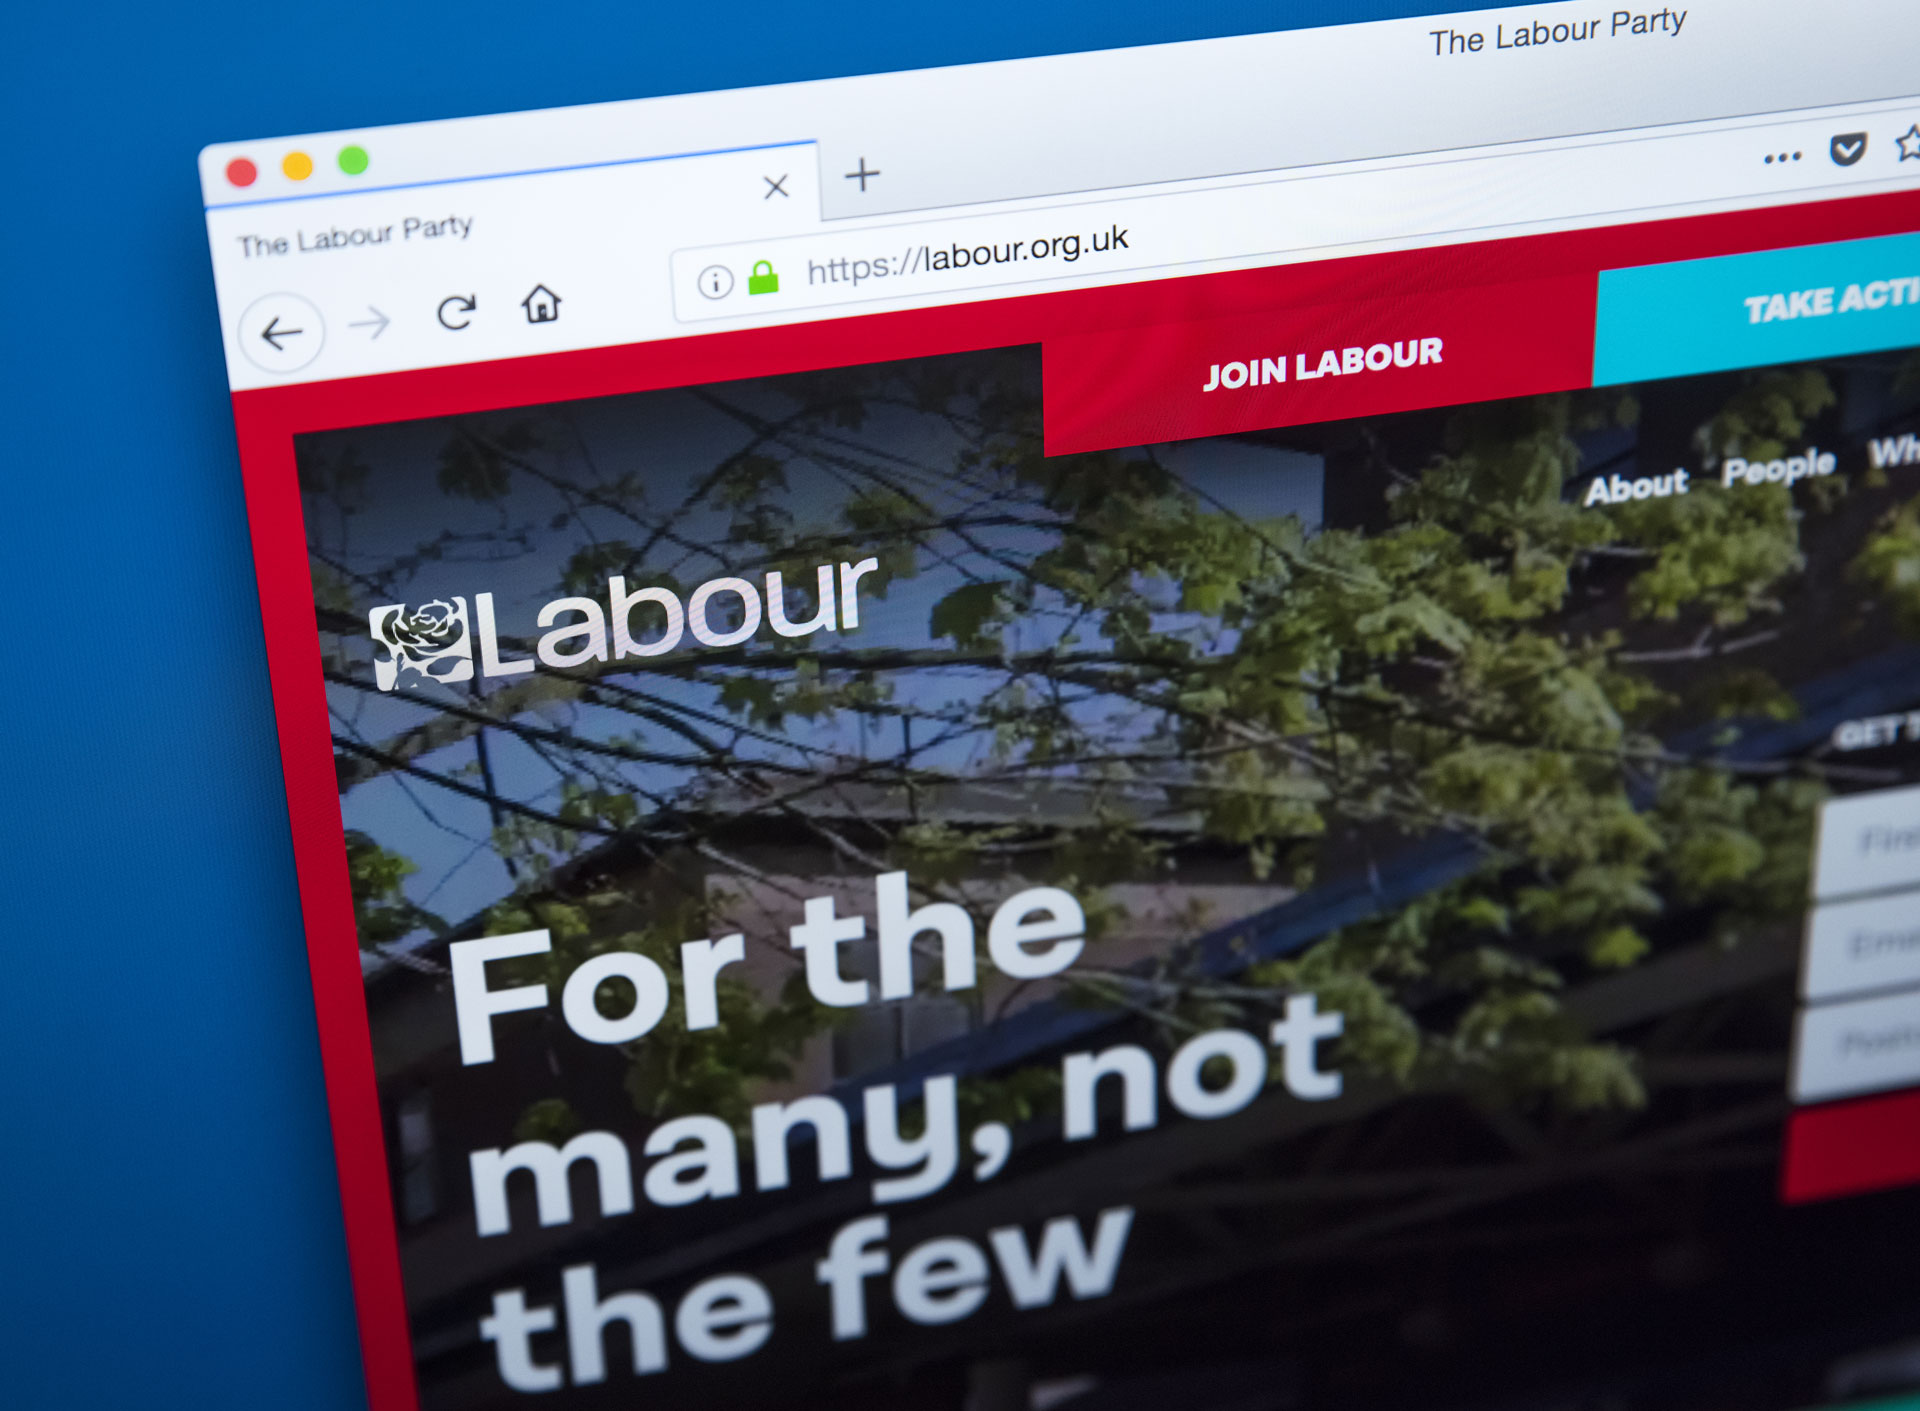 Labour cyberattack: Was a nation state behind the incident?